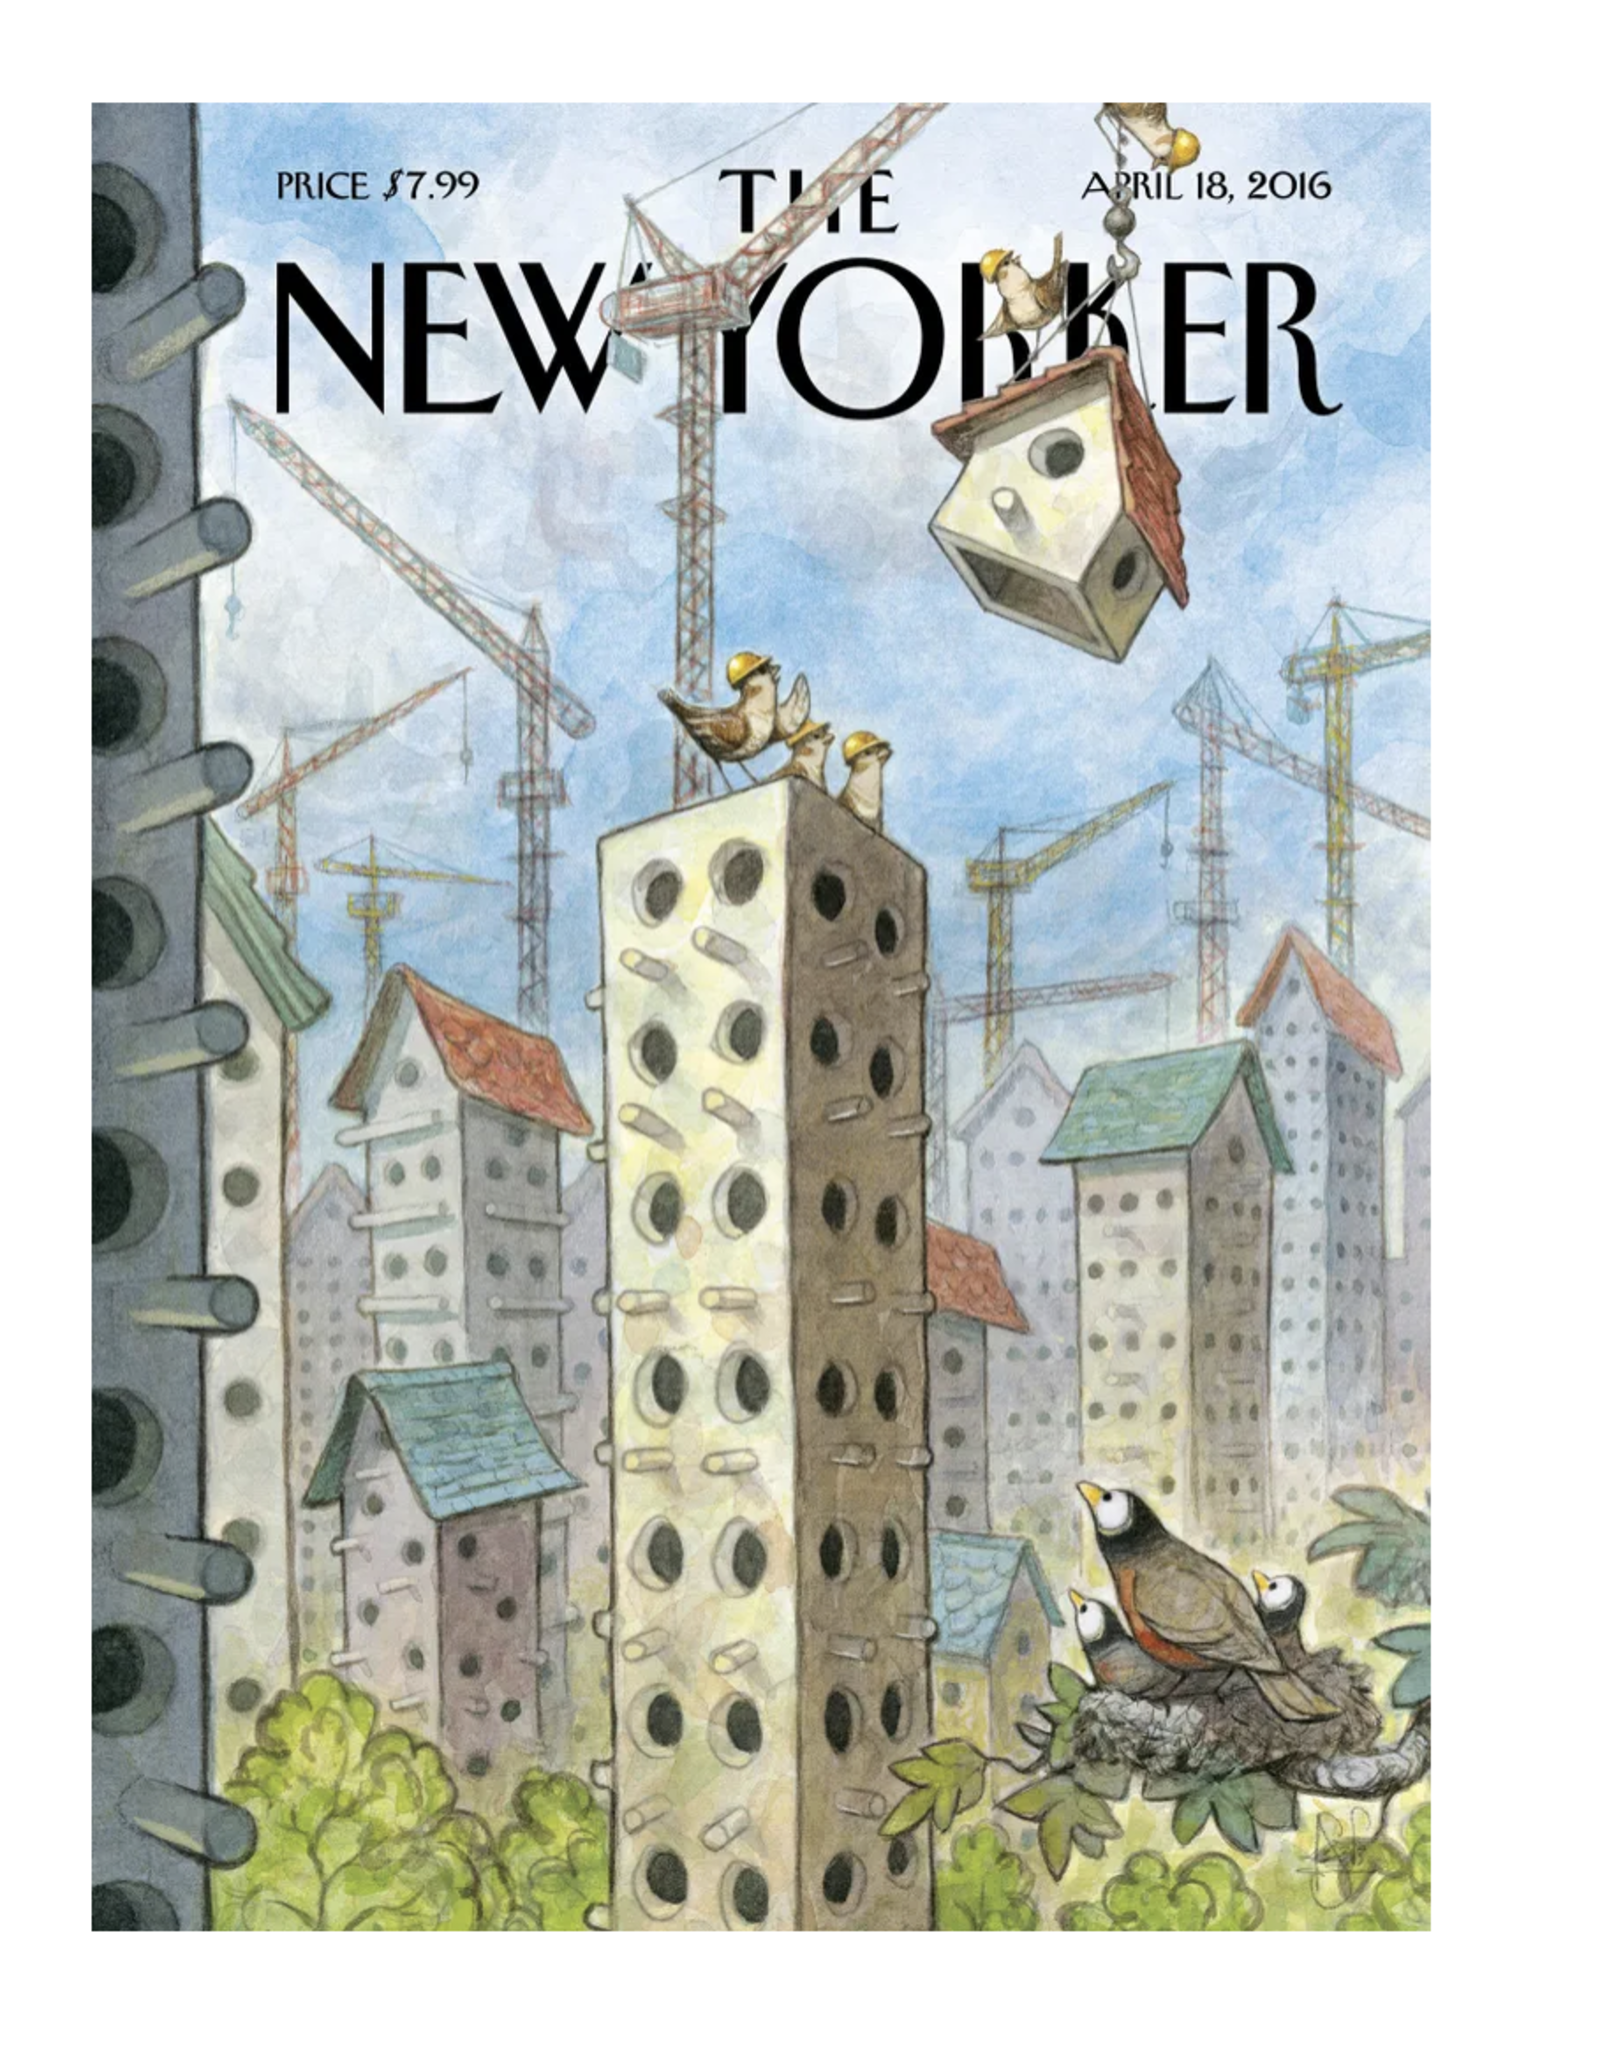 New Home - The New Yorker